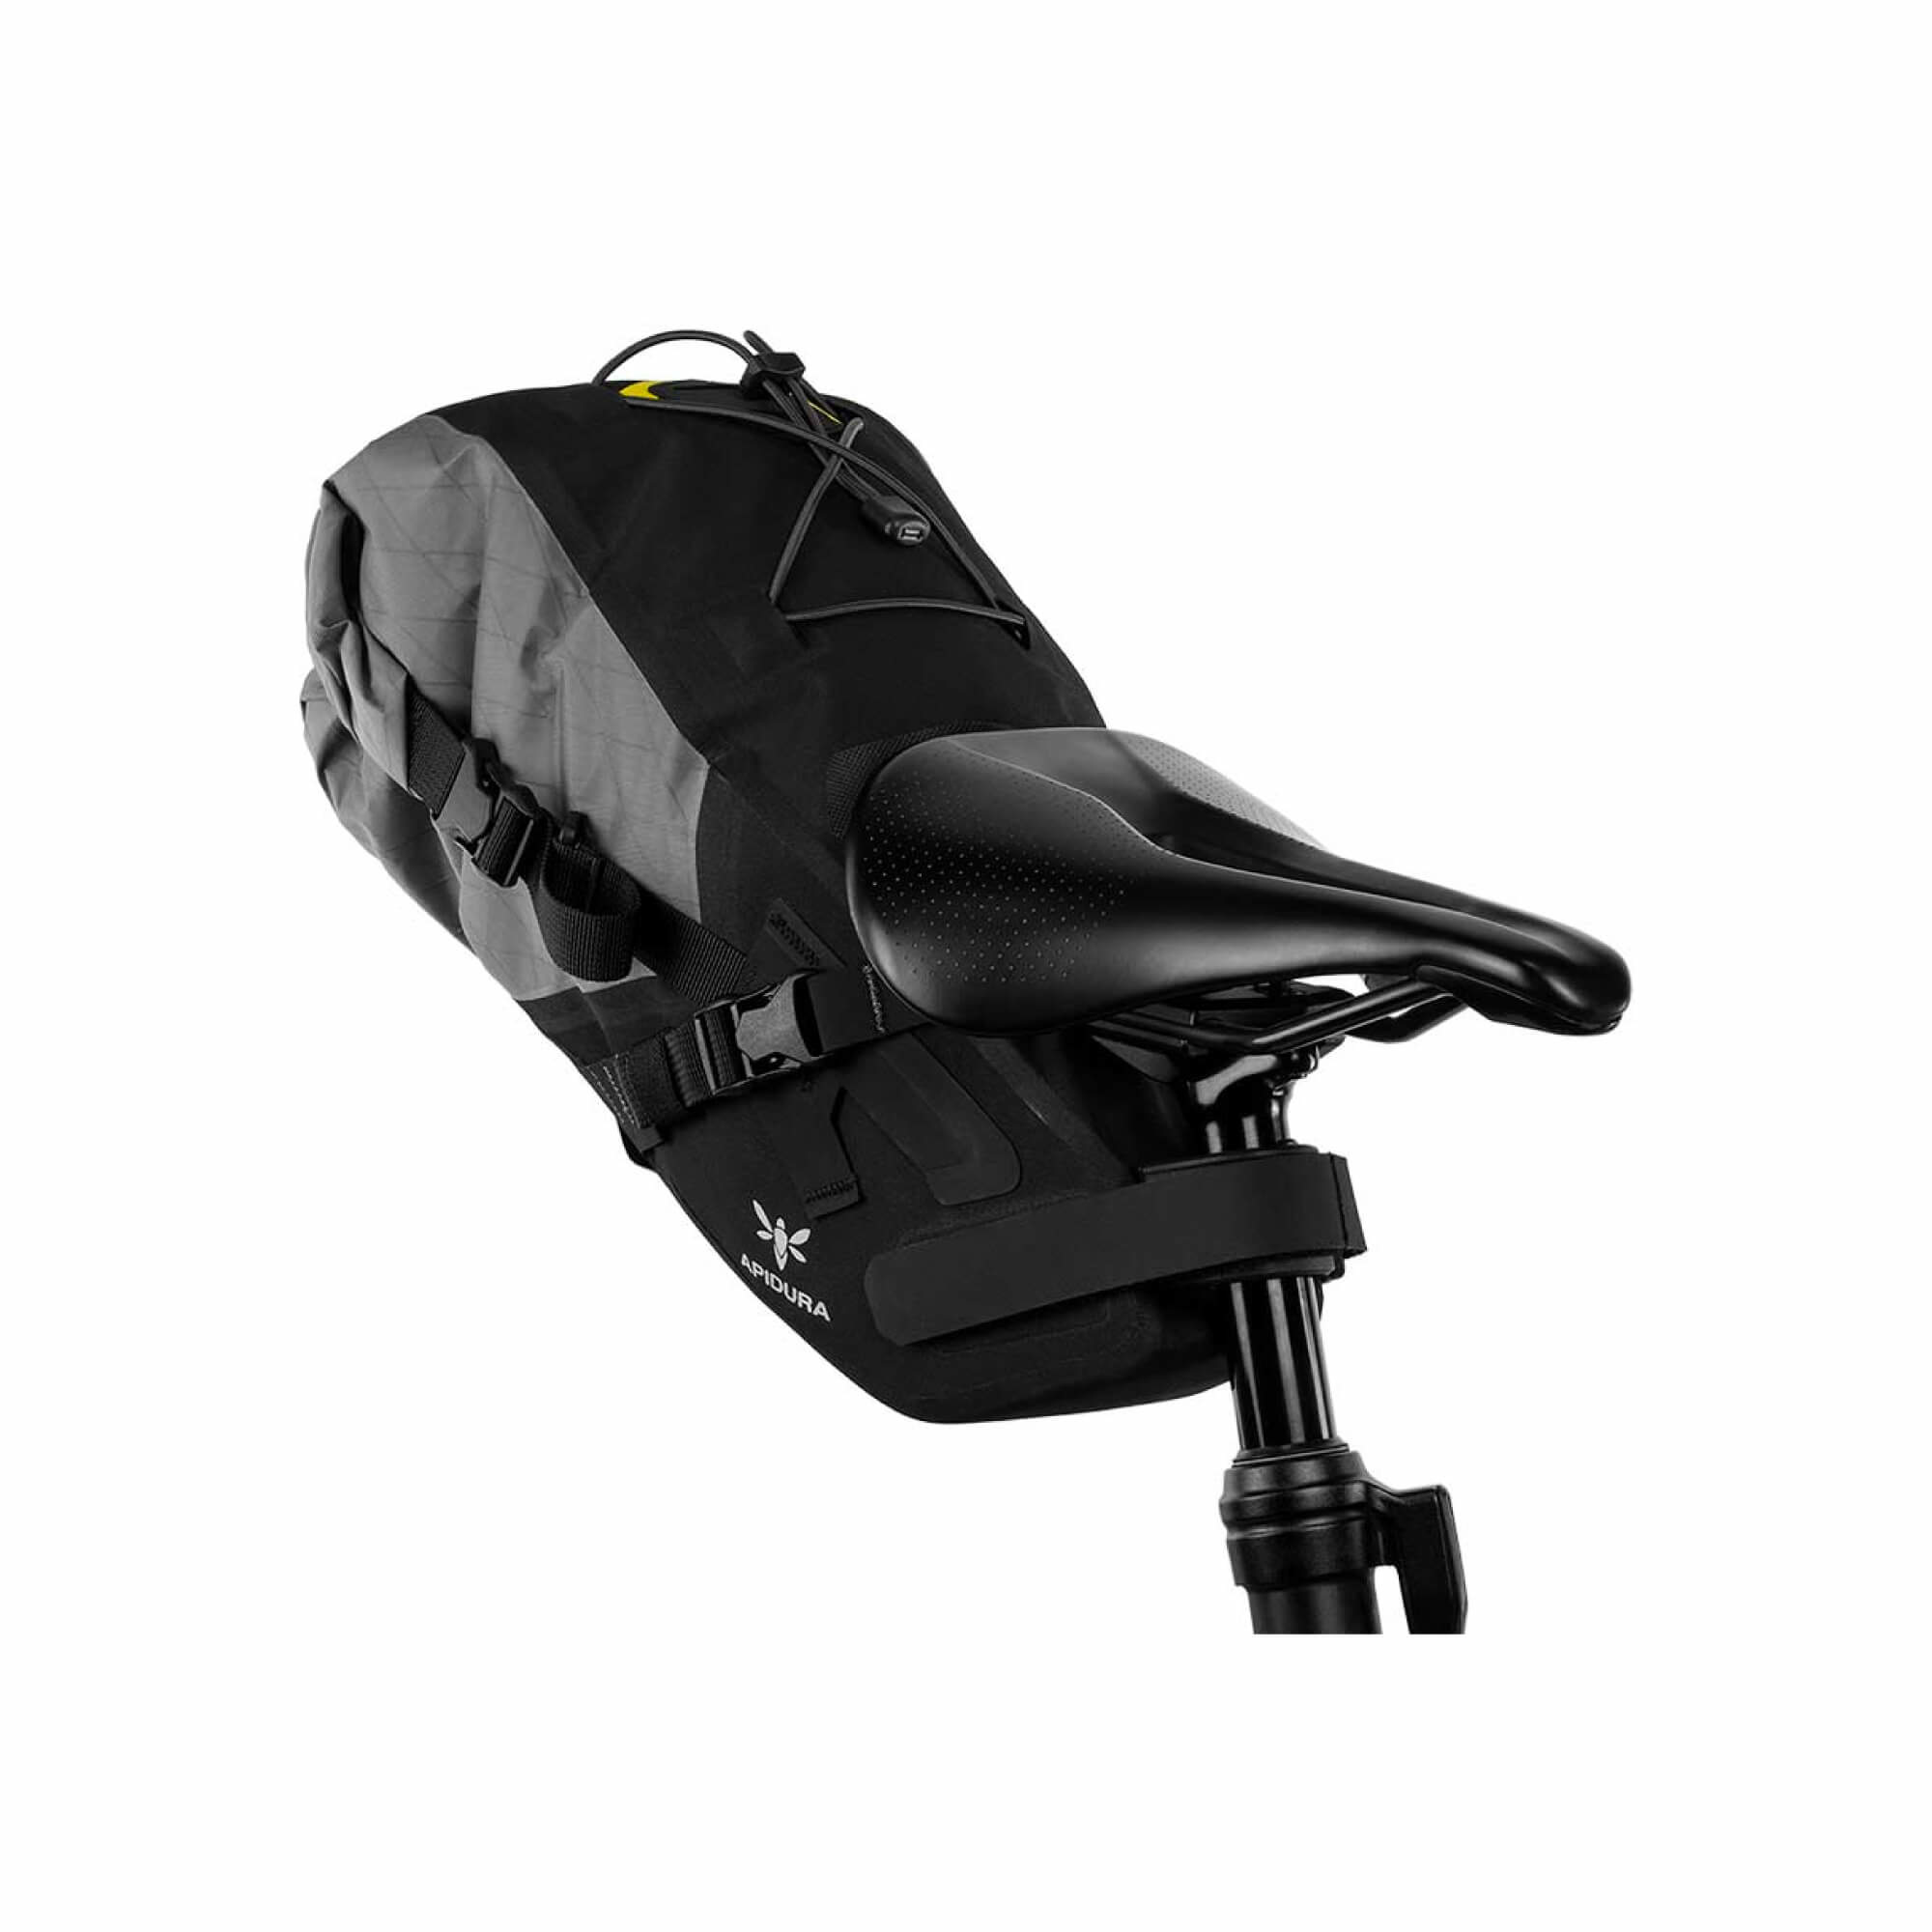 Backcountry2 Saddle Pack 6 L-4